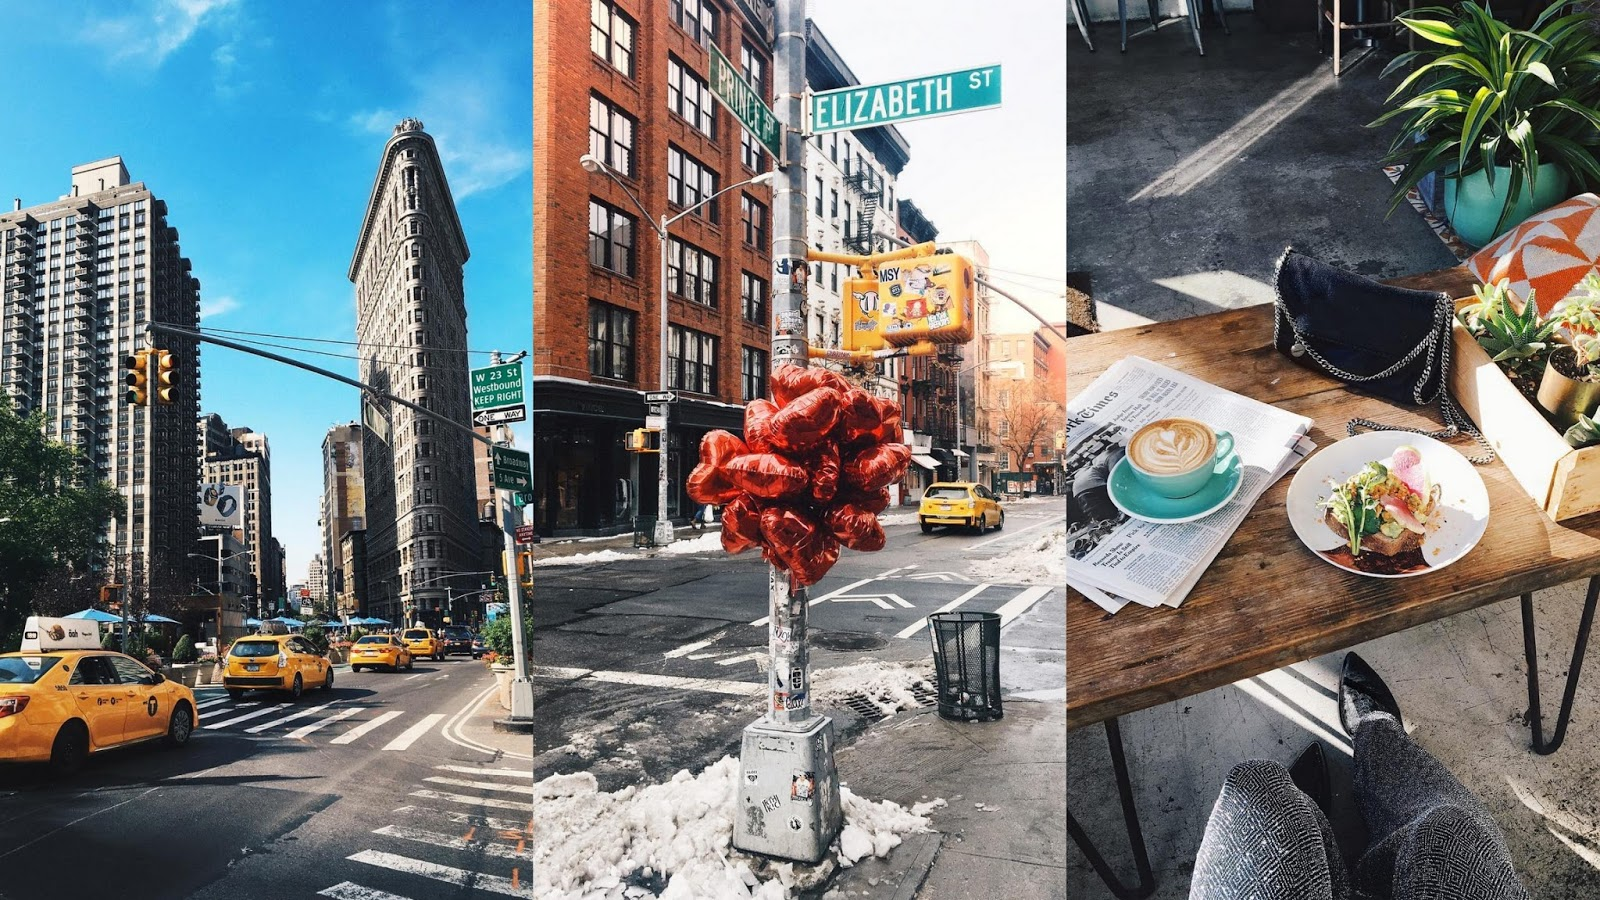 7 NYC instagram accounts to follow - Viktoria Dahlberg